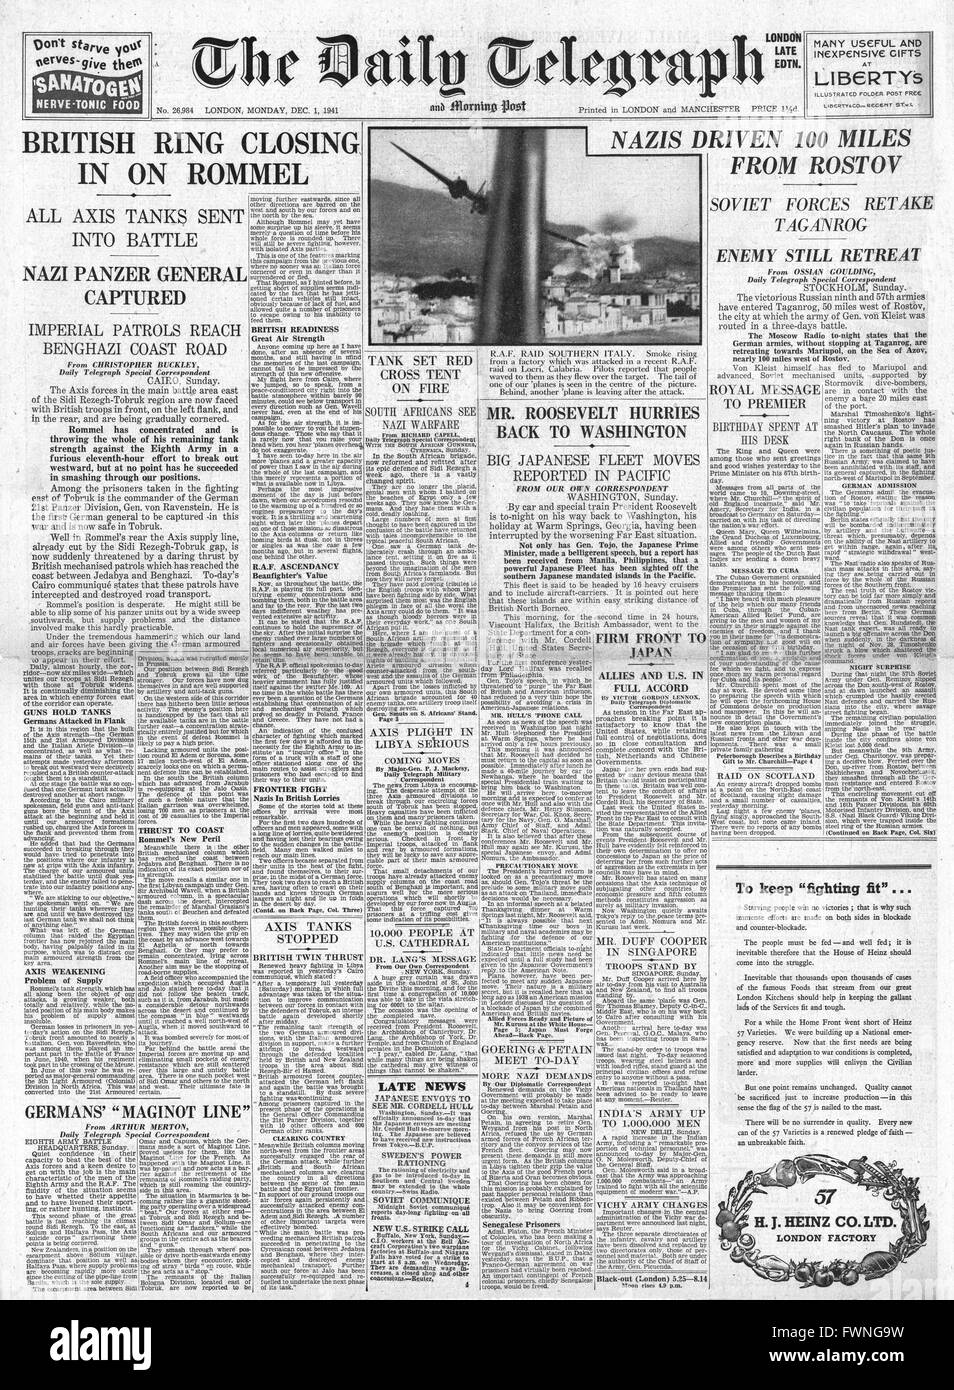 1941 front page Daily Telegraph Japanese Naval Manoeuvres in Far East cause Roosevelt concern, Battle for Libya Stock Photo